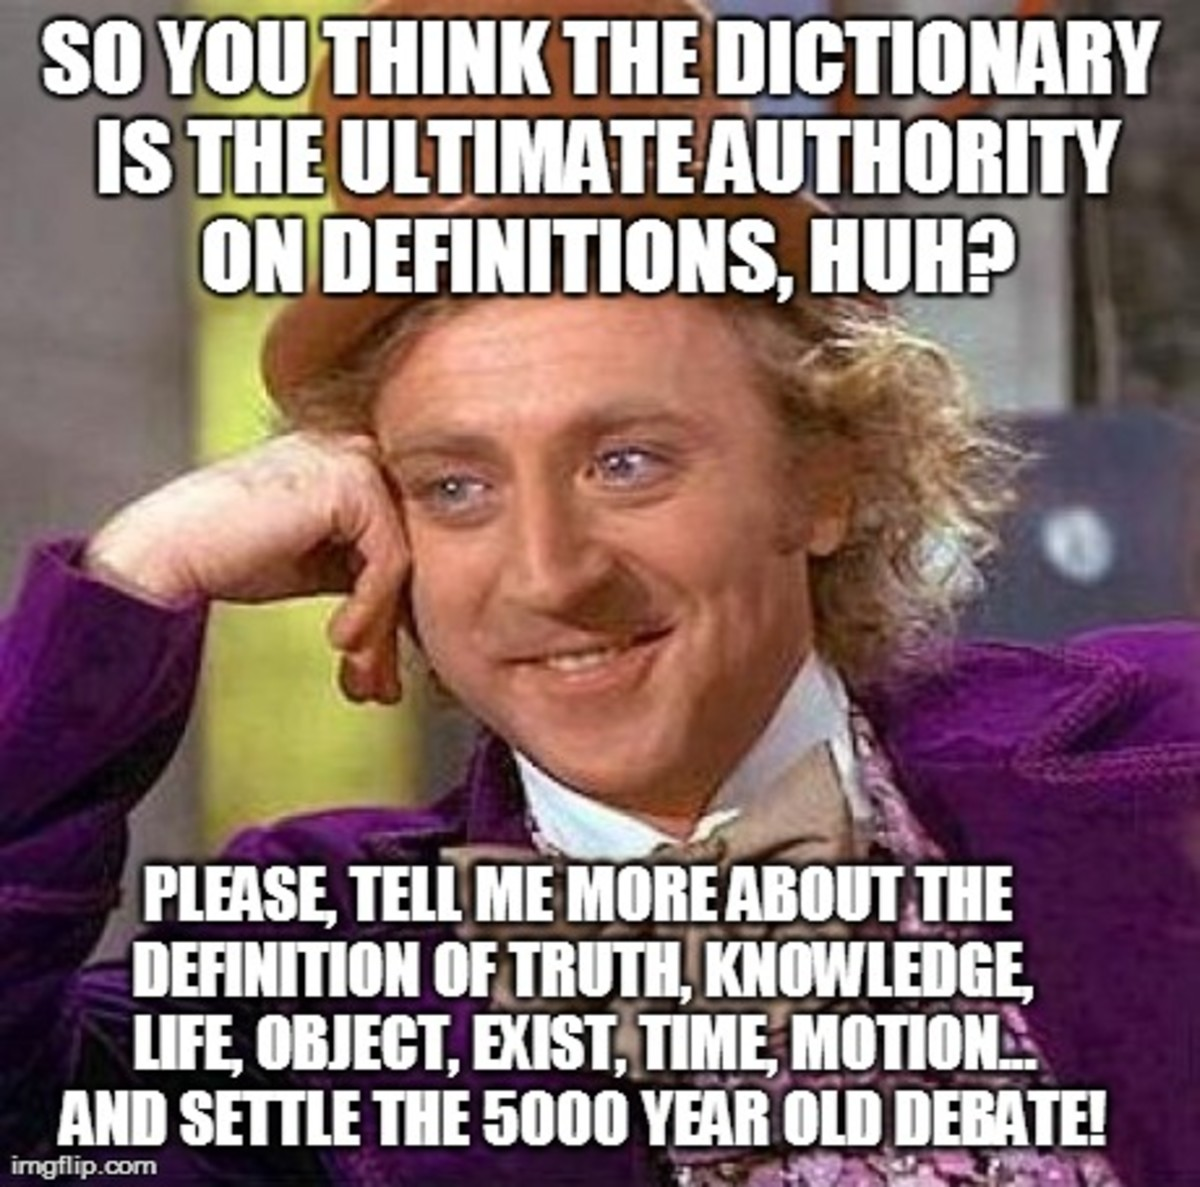 If you can use a dictionary to answer Wonka, then you have debunked this article. Please post your answer so this article can be taken down promptly!